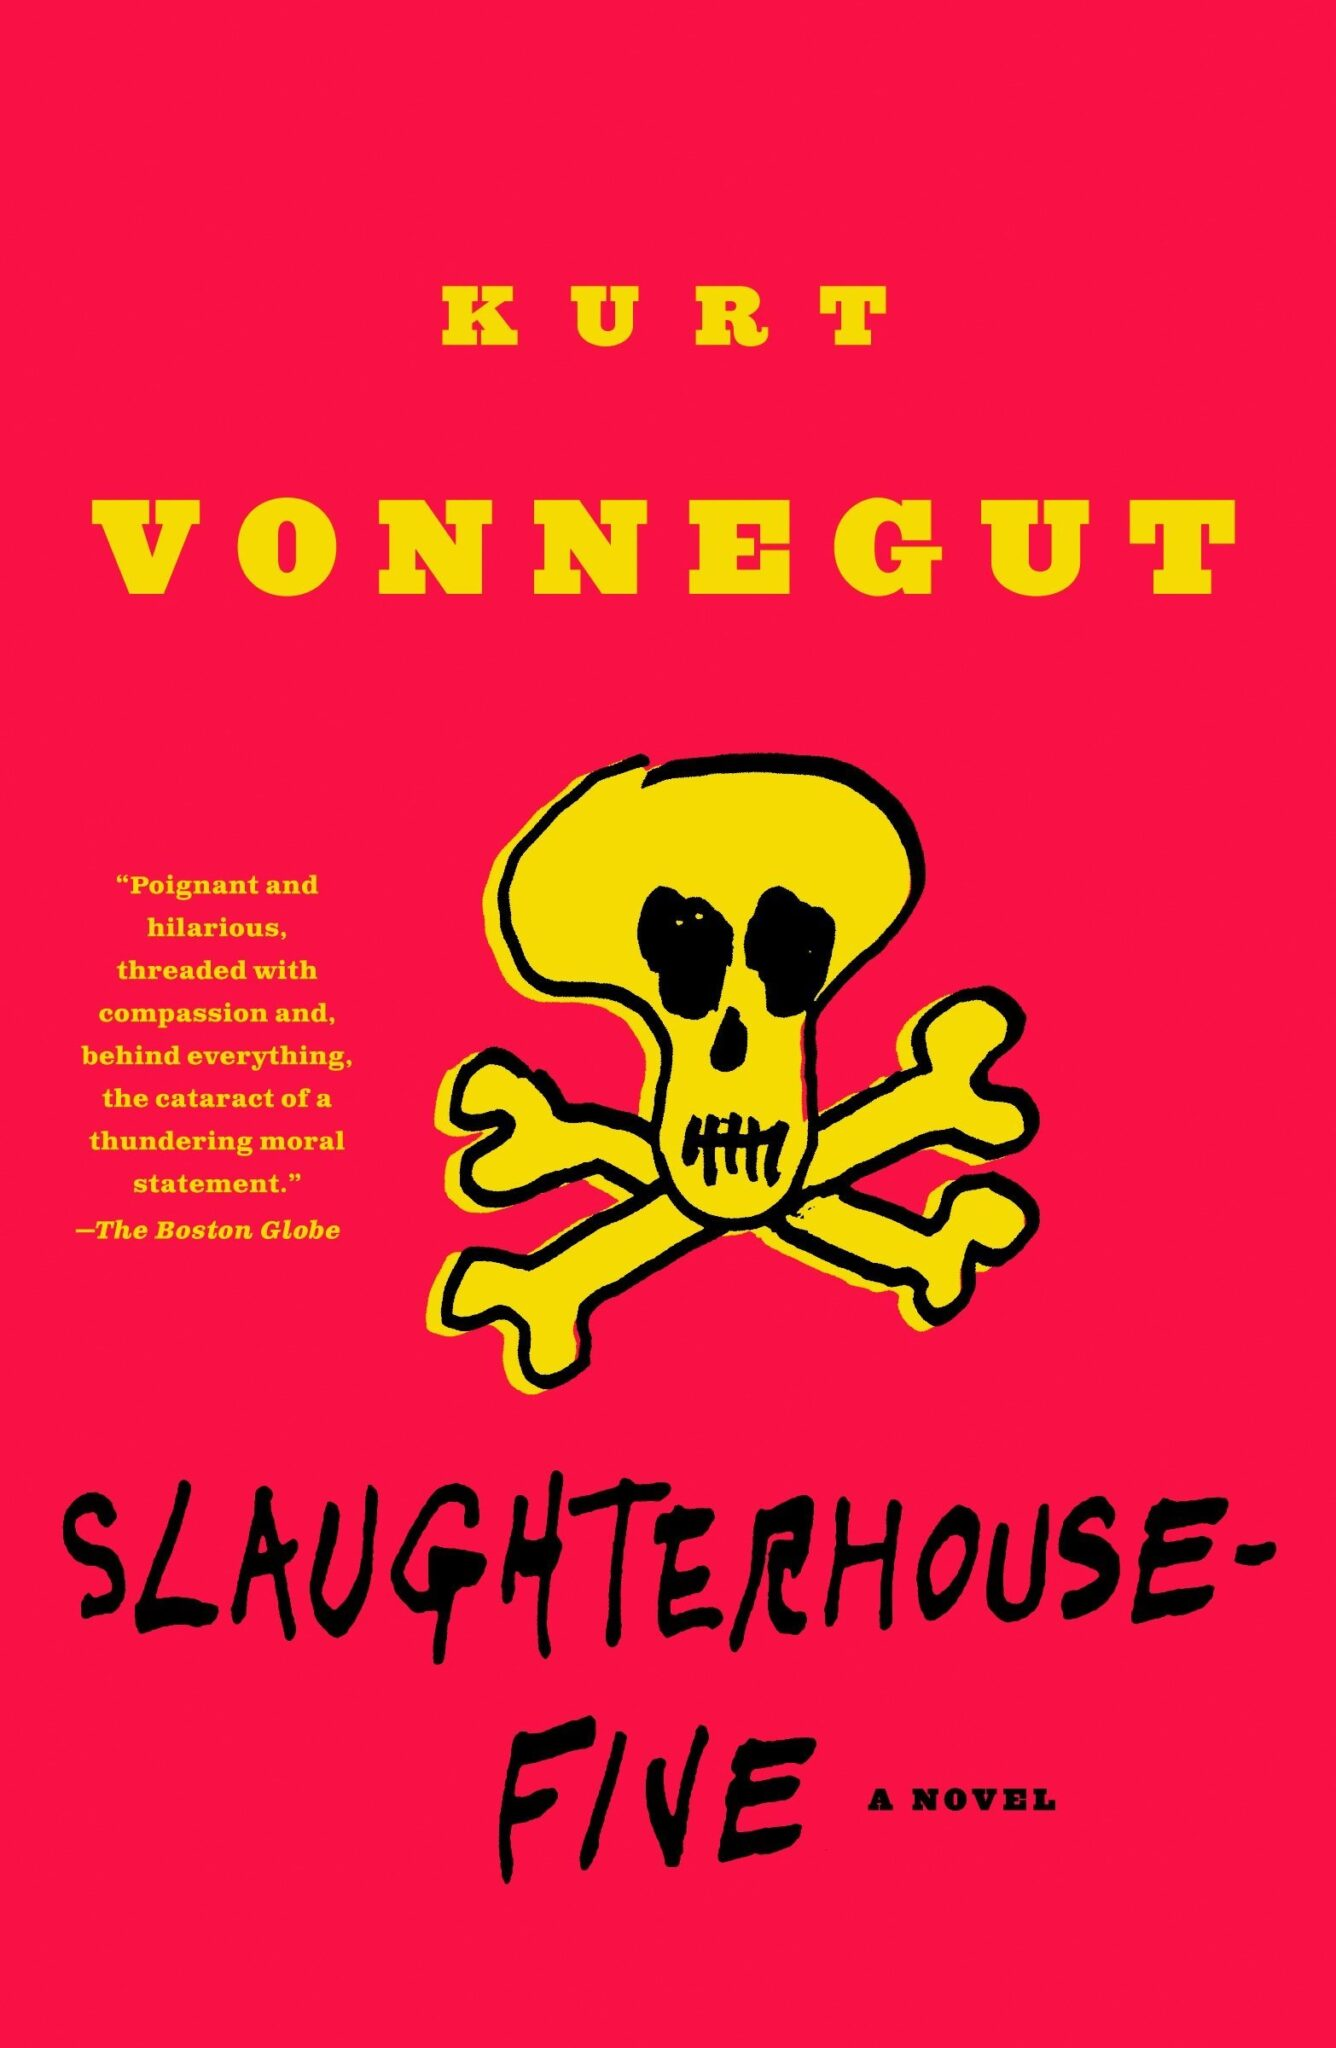 Kurt Vonnegut books 13